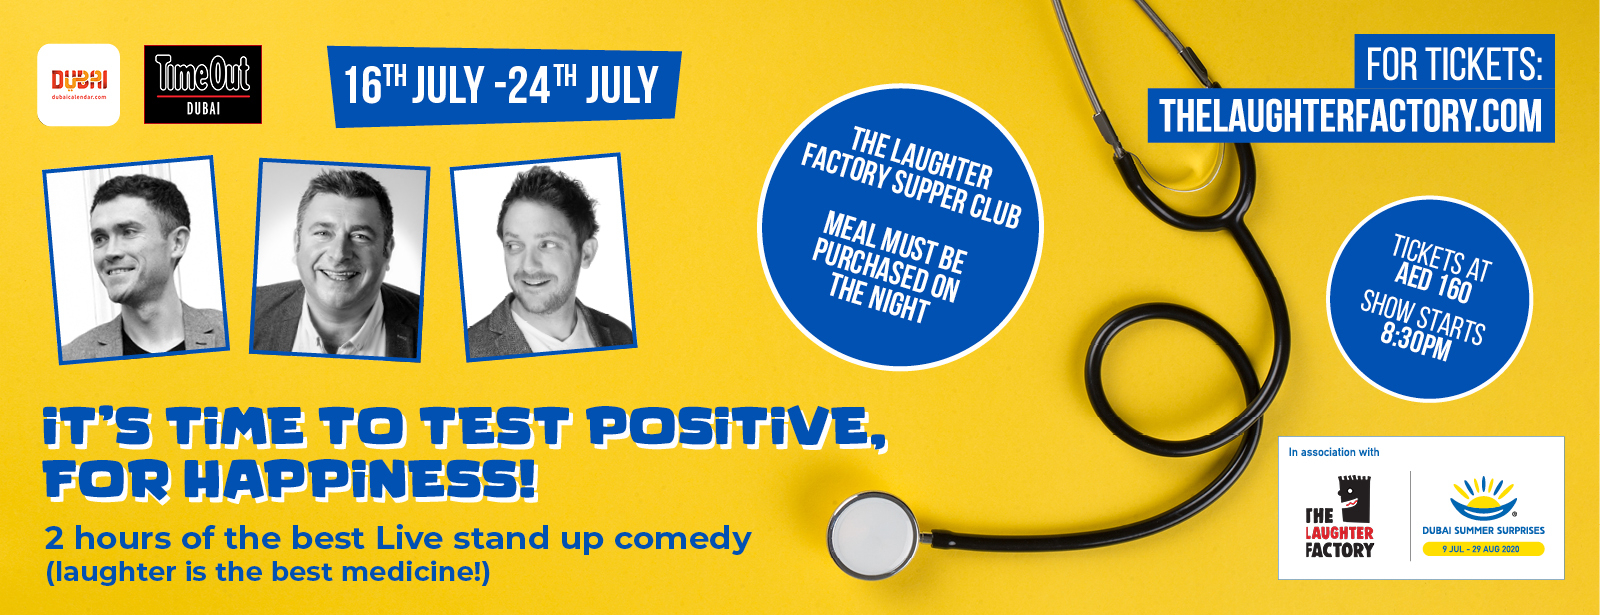 The Laughter Factory Supper Club 'It's Time to Test Positive, for Happiness' Tour July 2020